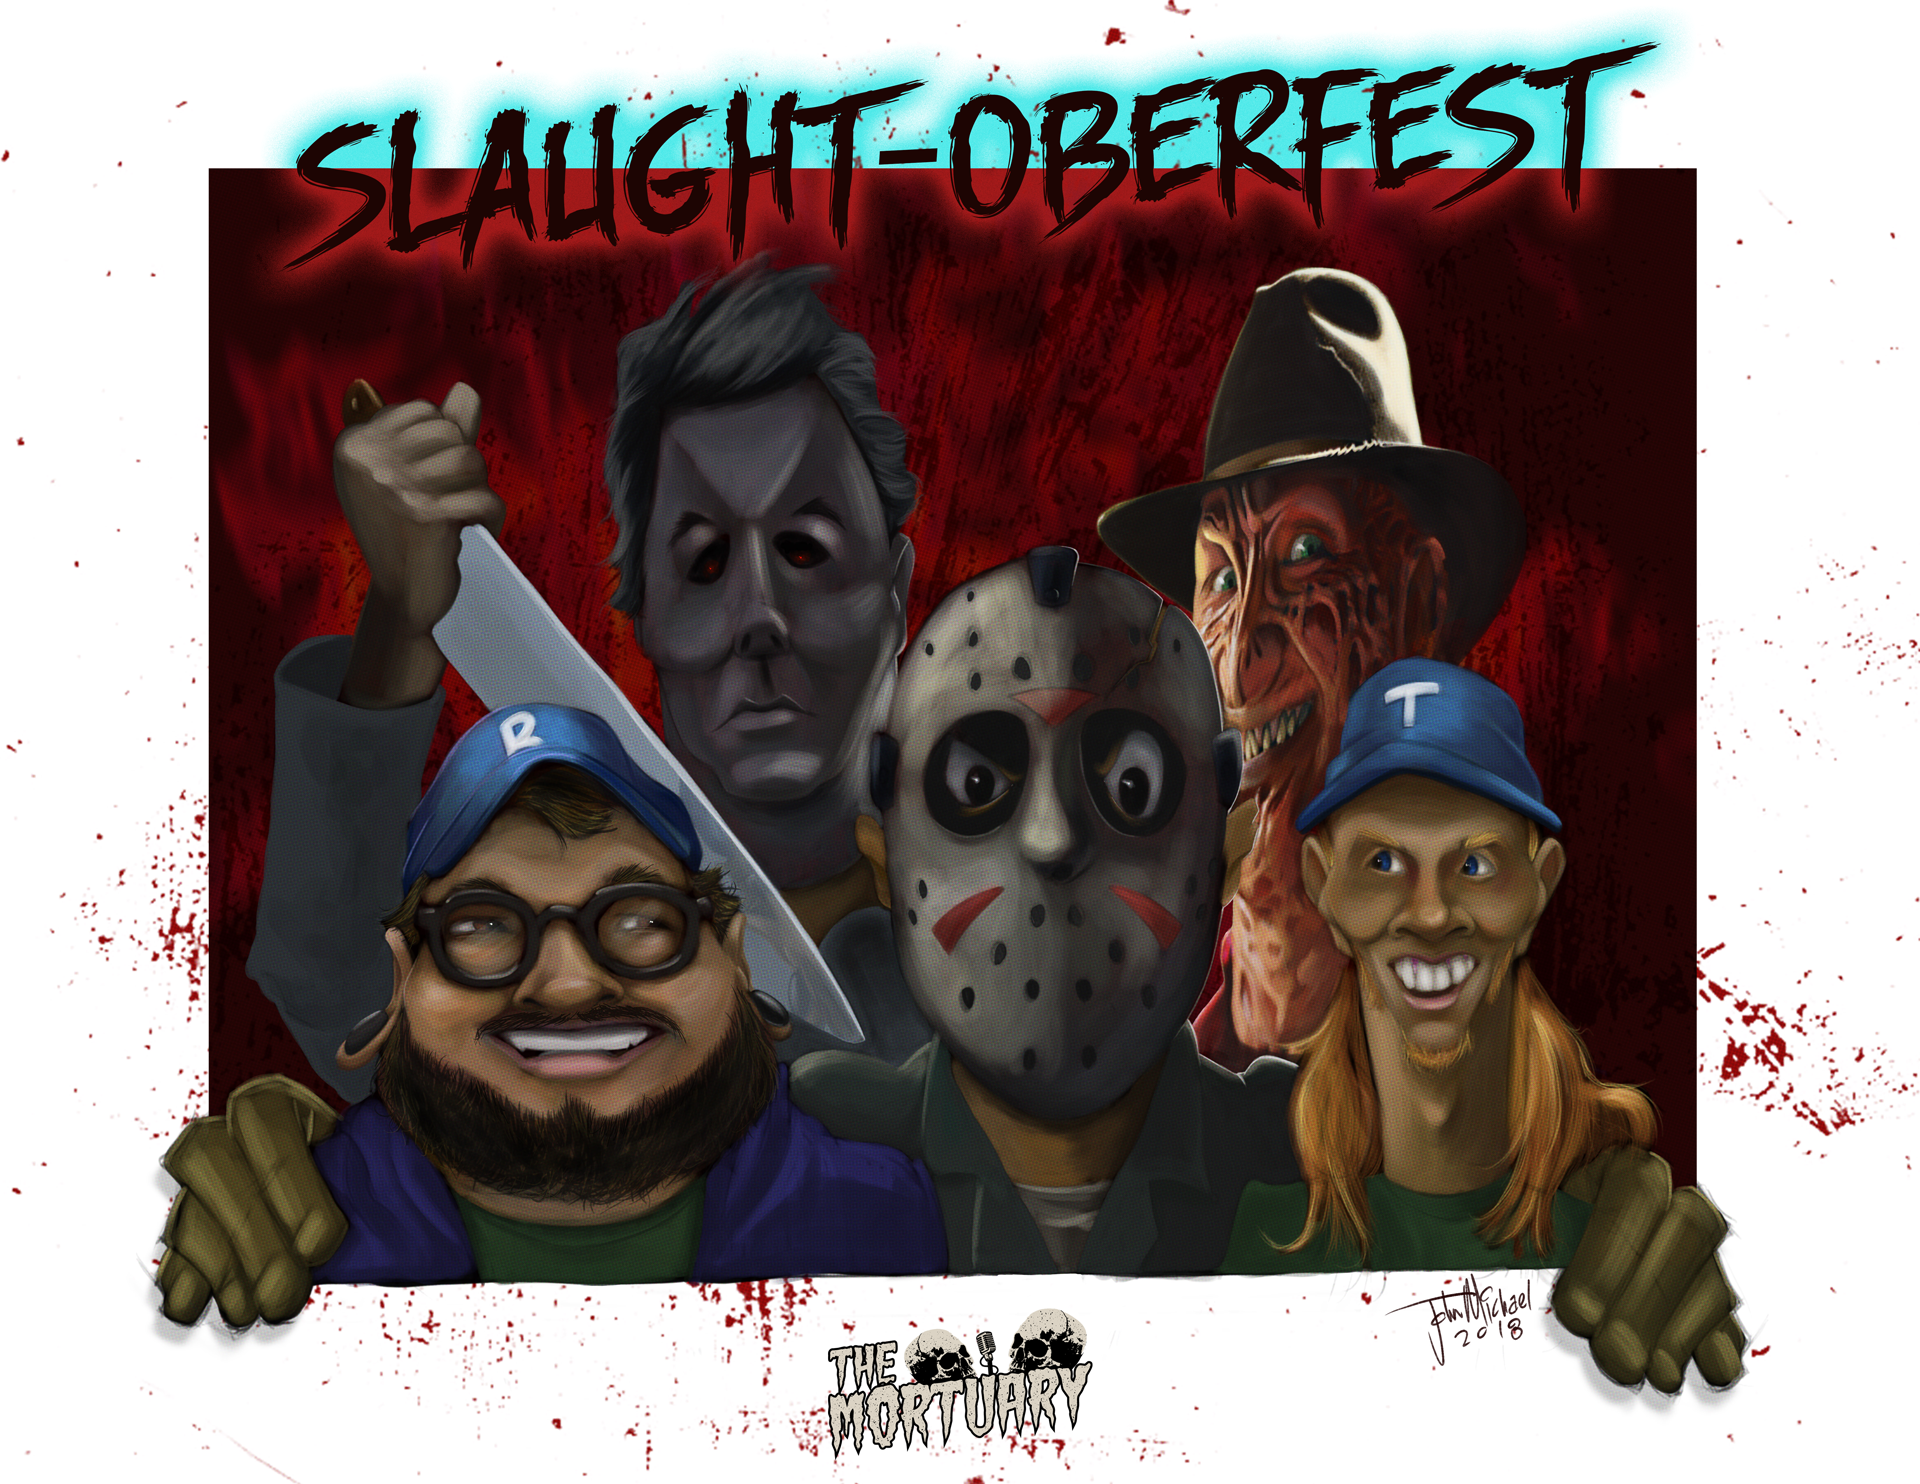 Slaught-Oberfest The Mortuary Goofy Ink Podcast October Halloween Podcast